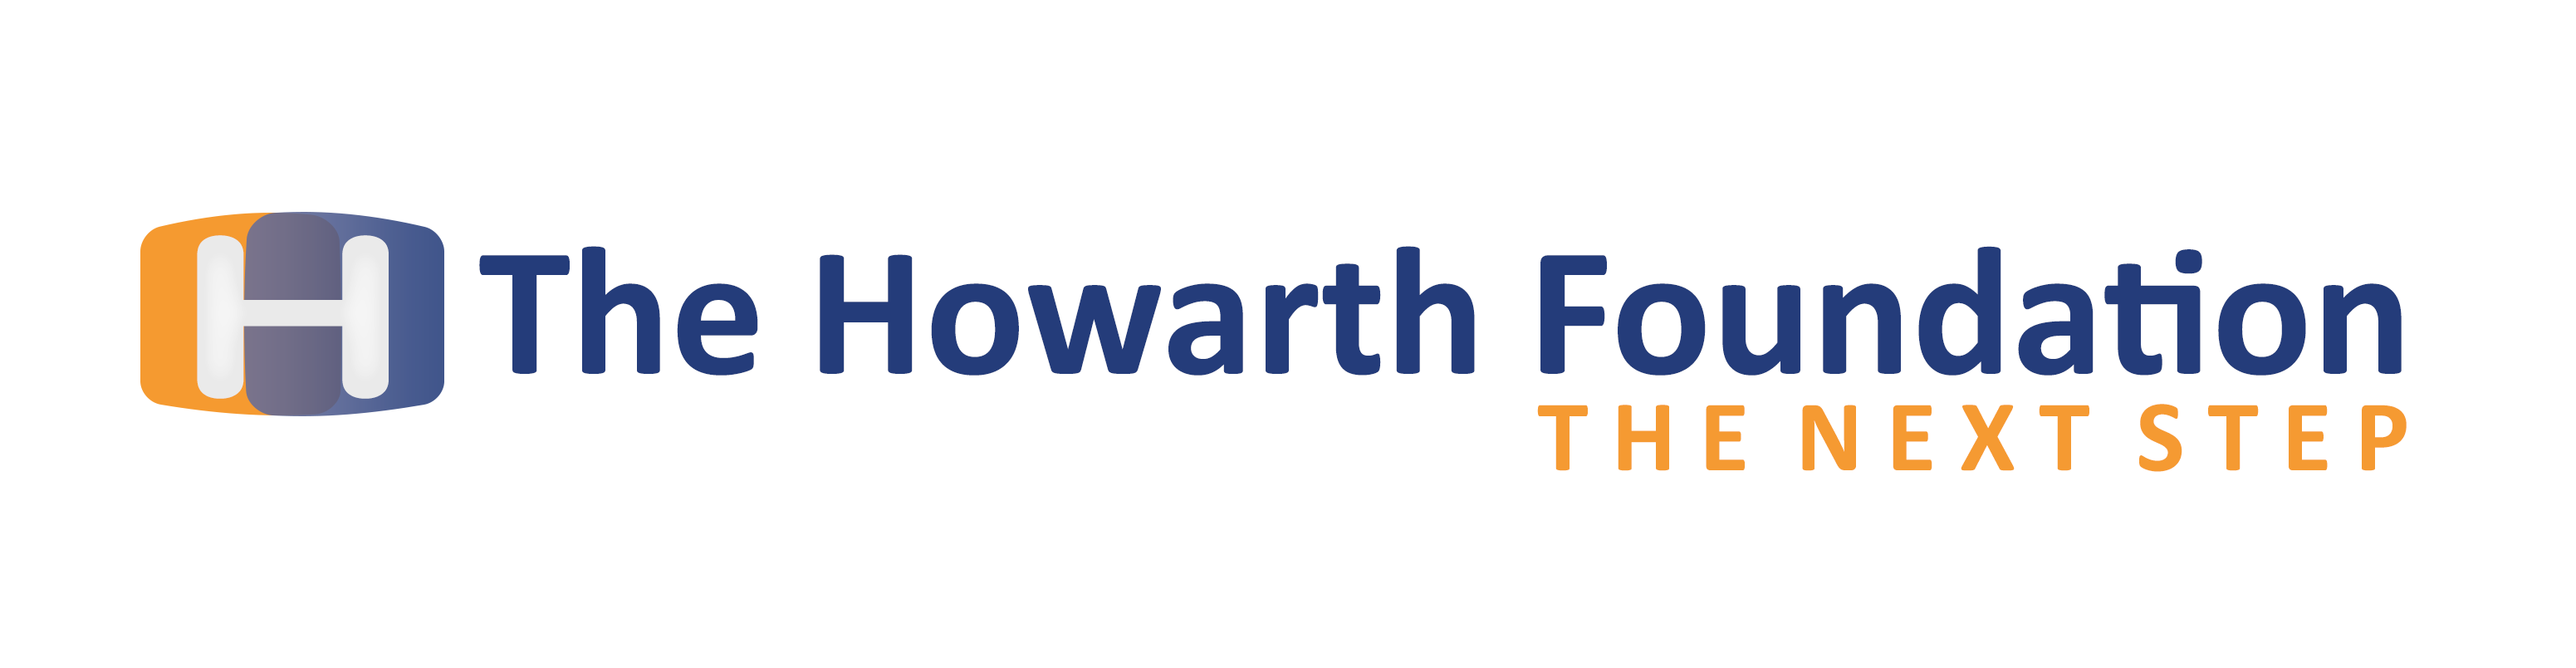 The Howarth Foundation